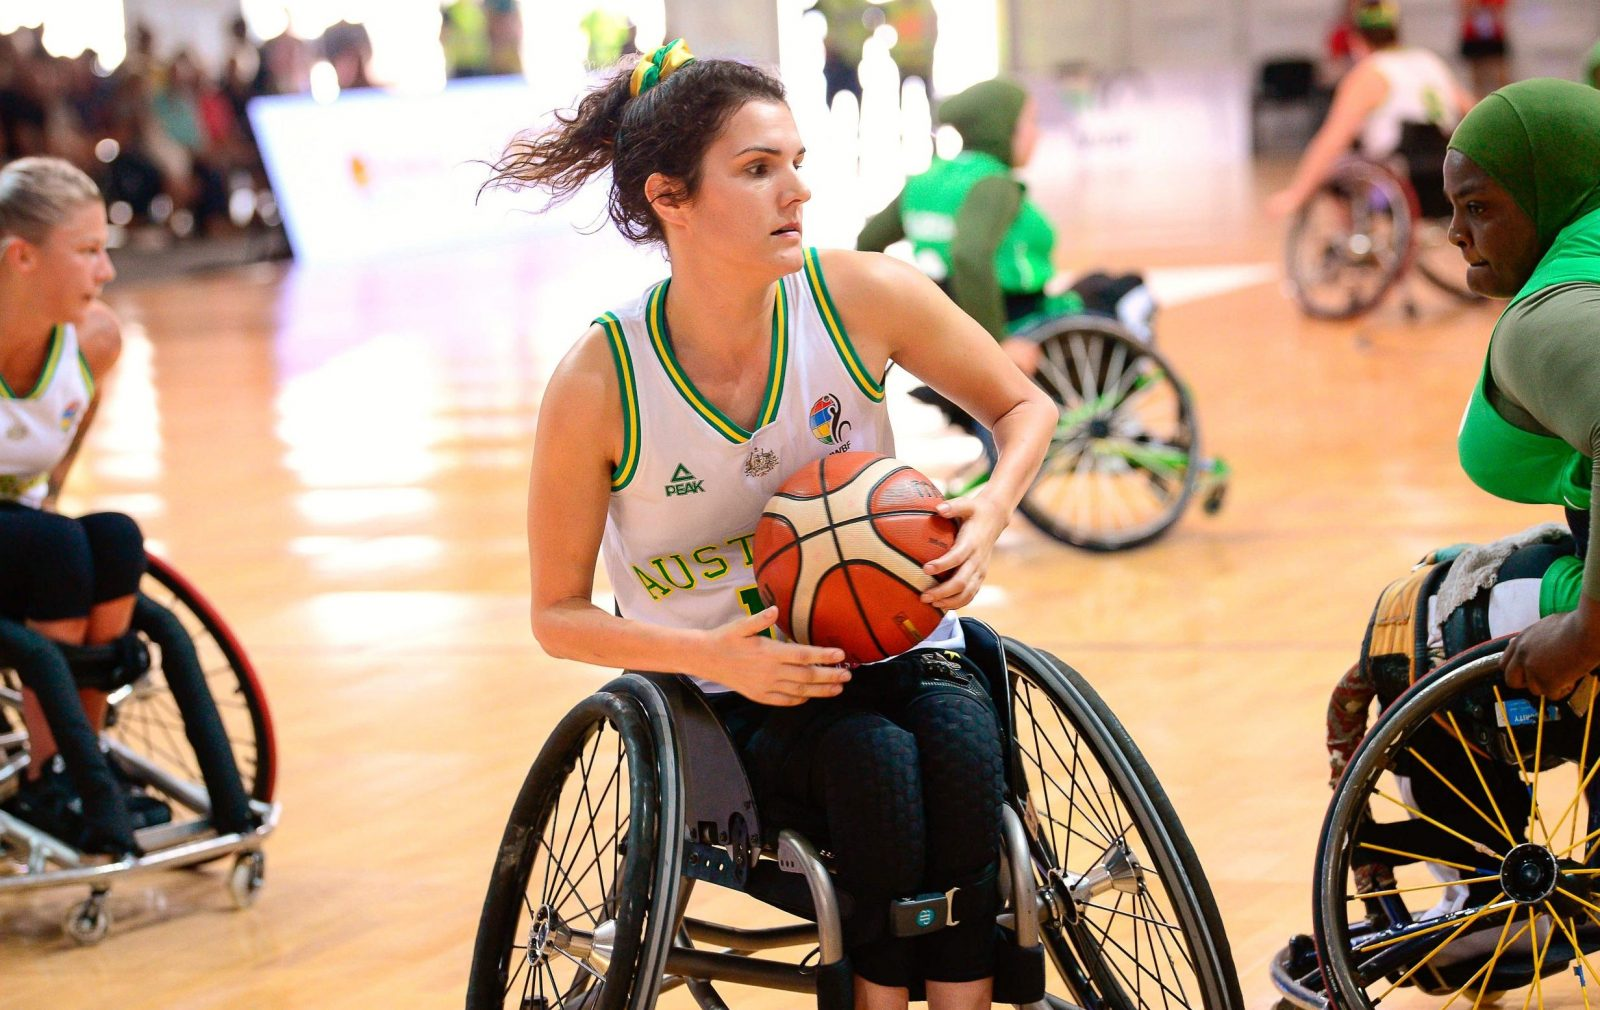 Gliders Squad Named Ahead of Tokyo Paralympics